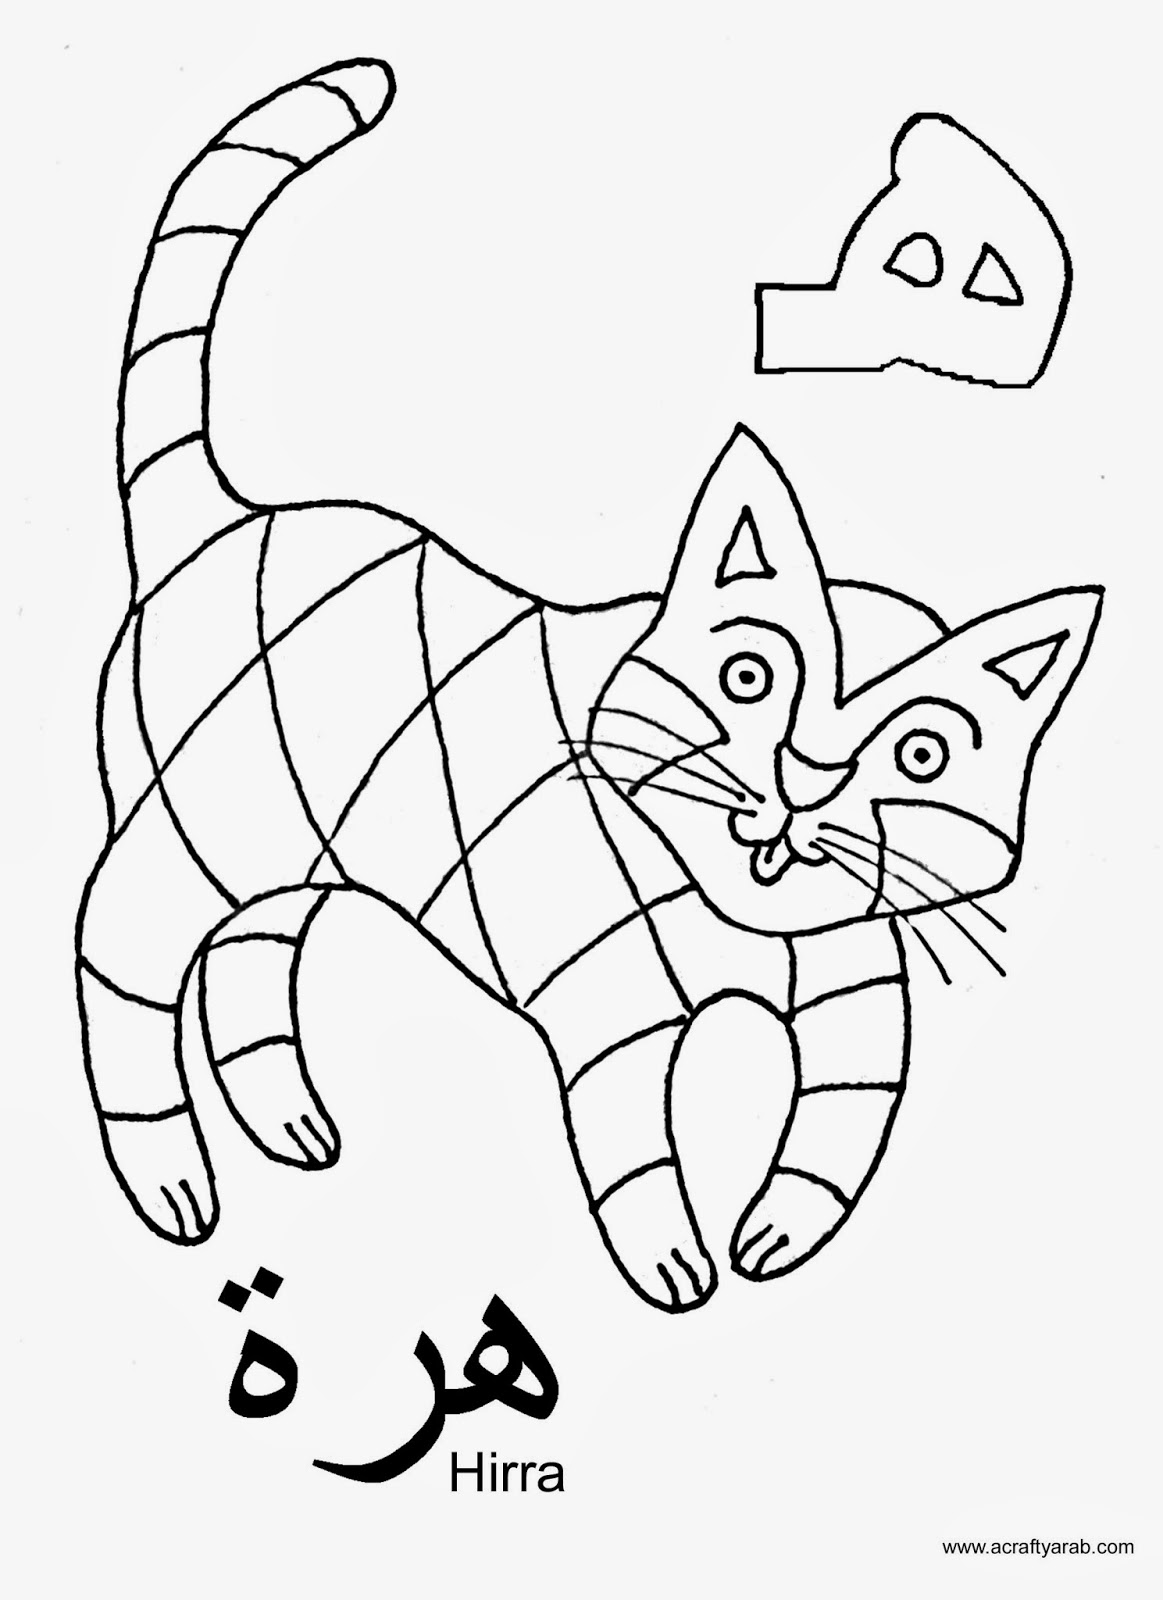 writing coloring pages | A Crafty Arab: Arabic Alphabet coloring pages...Haa is for ...